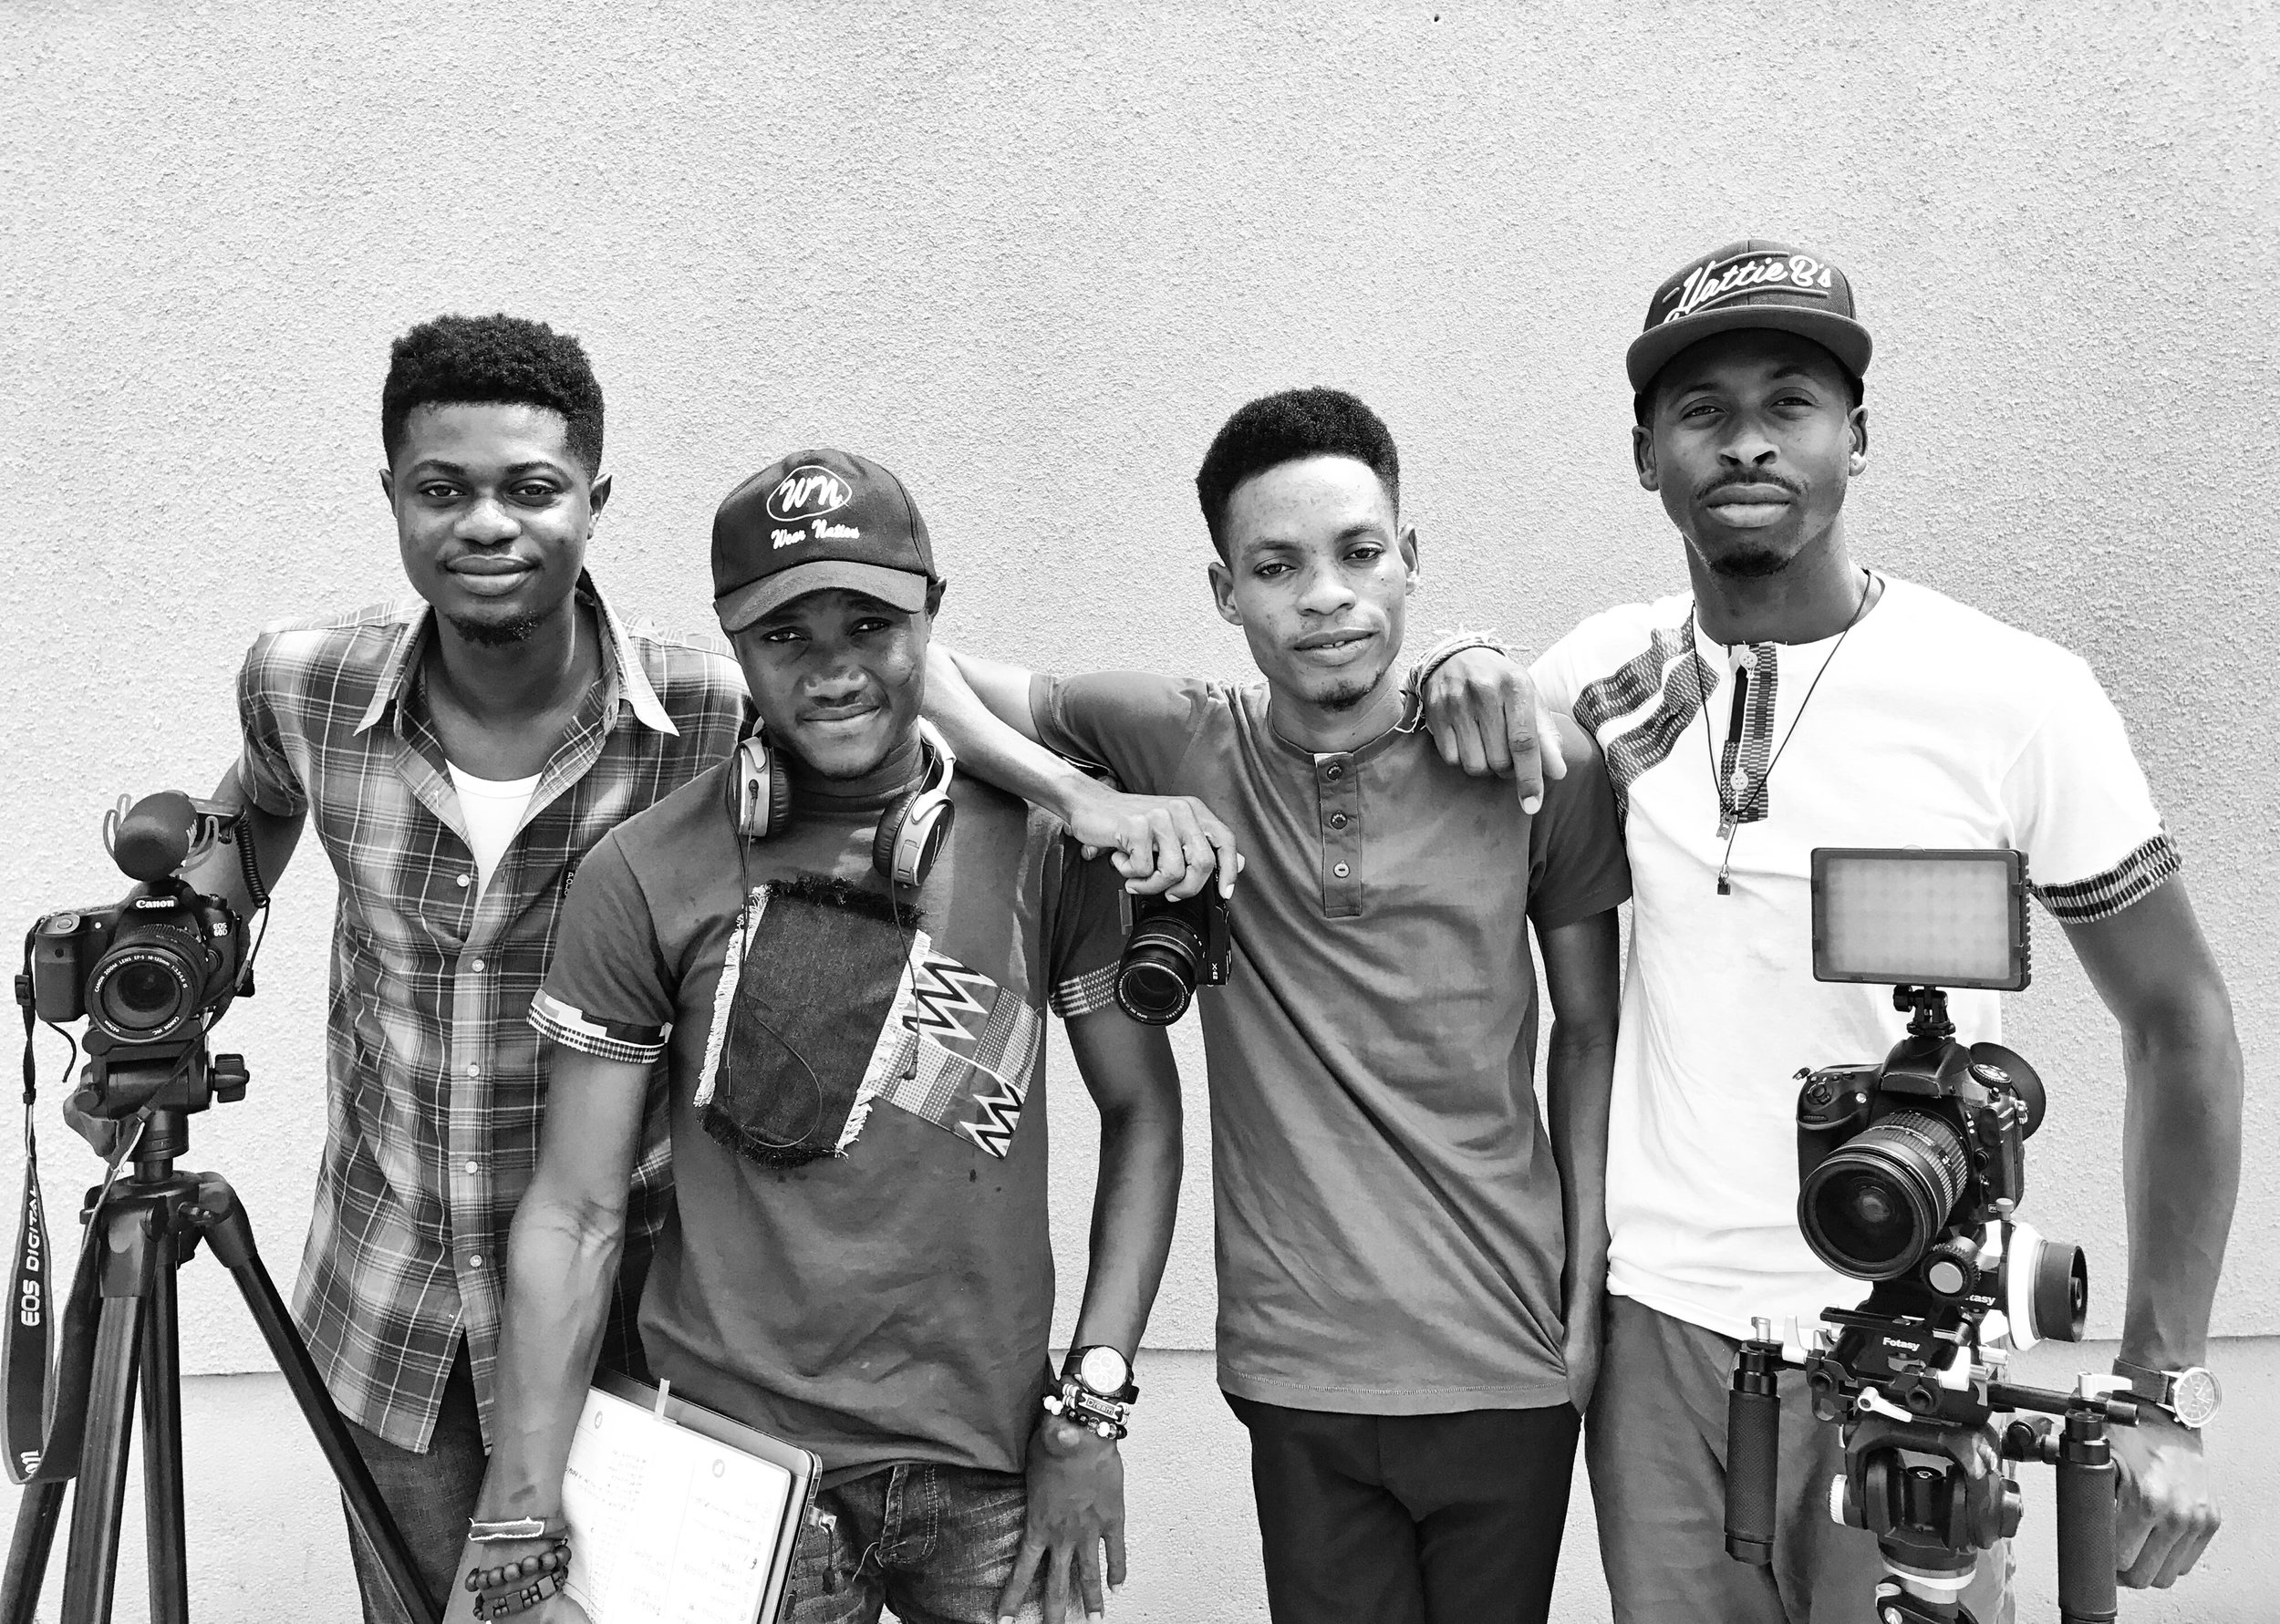 Filming crew on the ground in Ghana On the ground Ghana filming crew. From RIGHT - Isaac Mireku, Abdul Raafiu, Lucas Henry and Louis Bryant III.